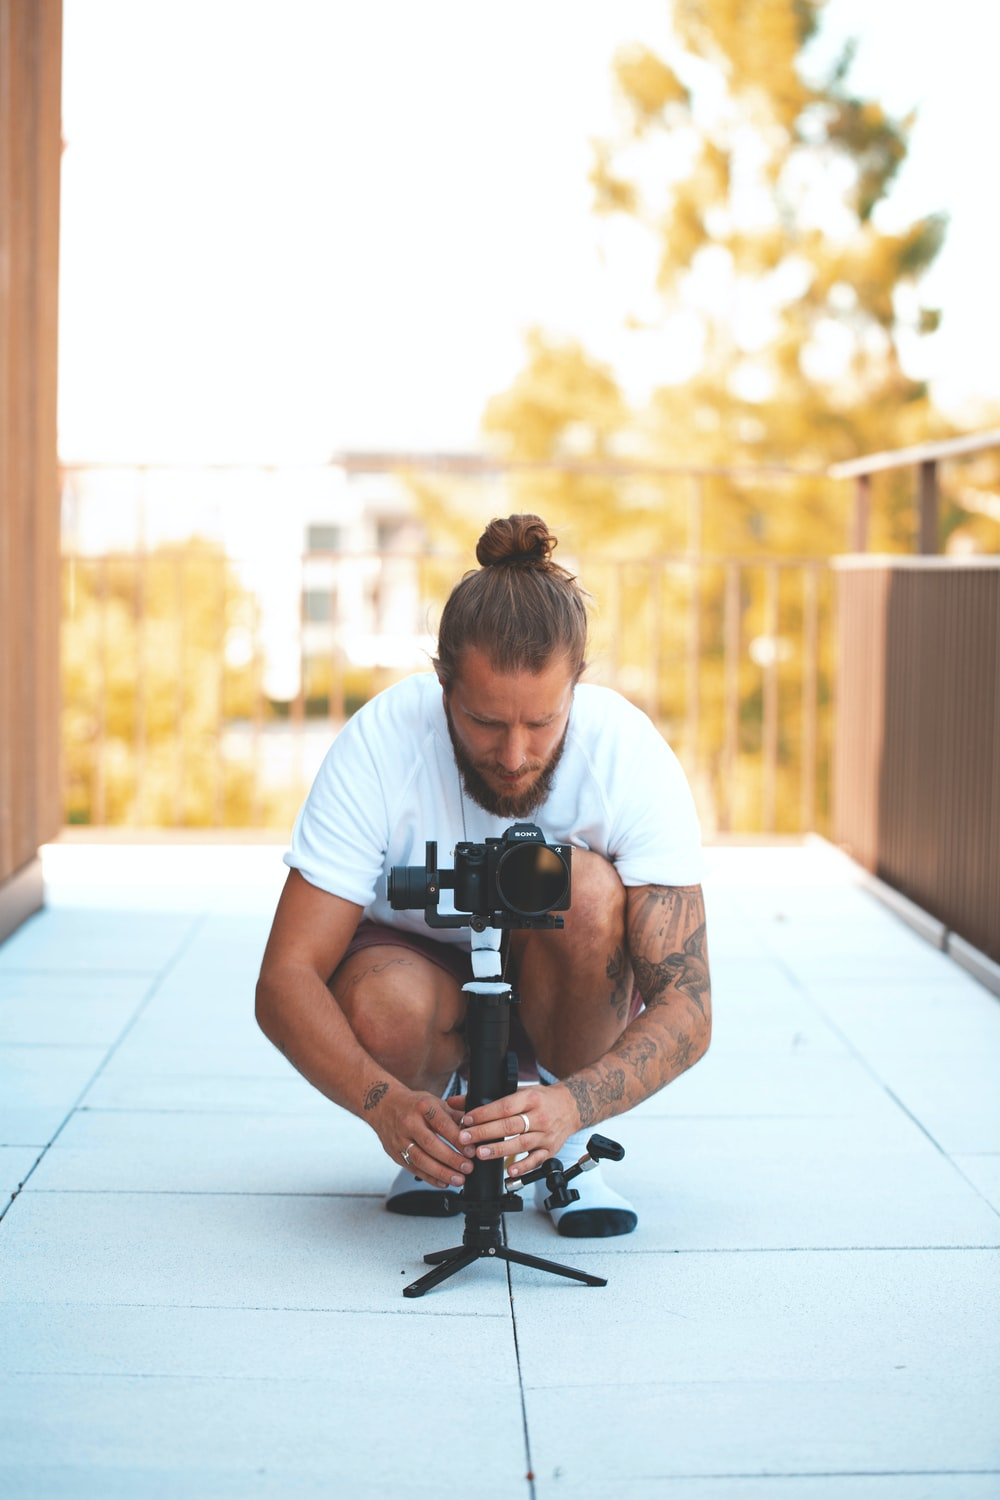 shallow focus photo of man in white T-shirt using DSLR camera